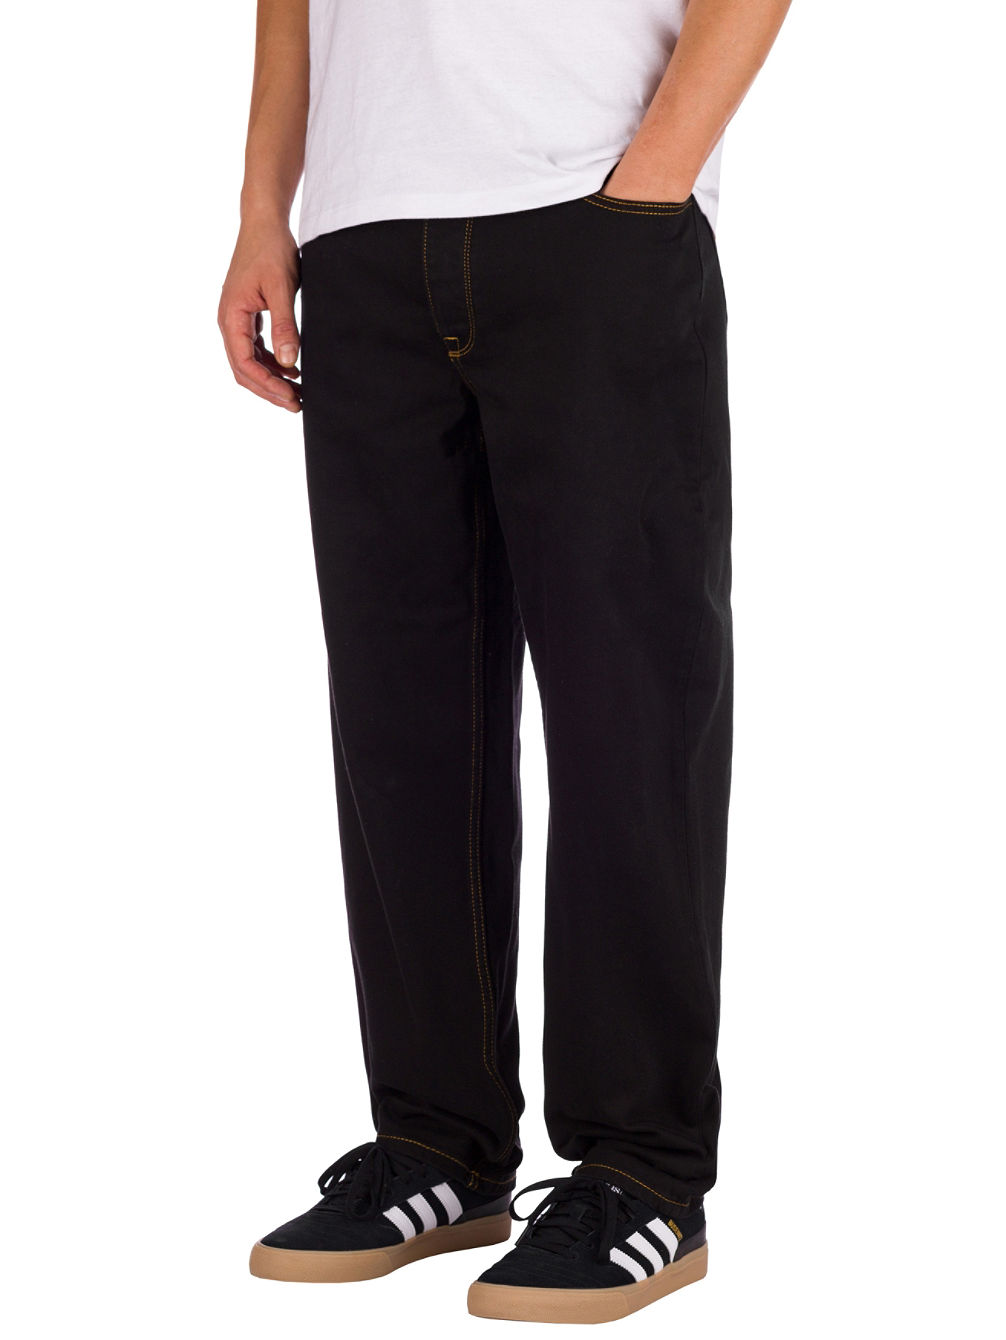 X-Tra BAGGY Twill Jeans